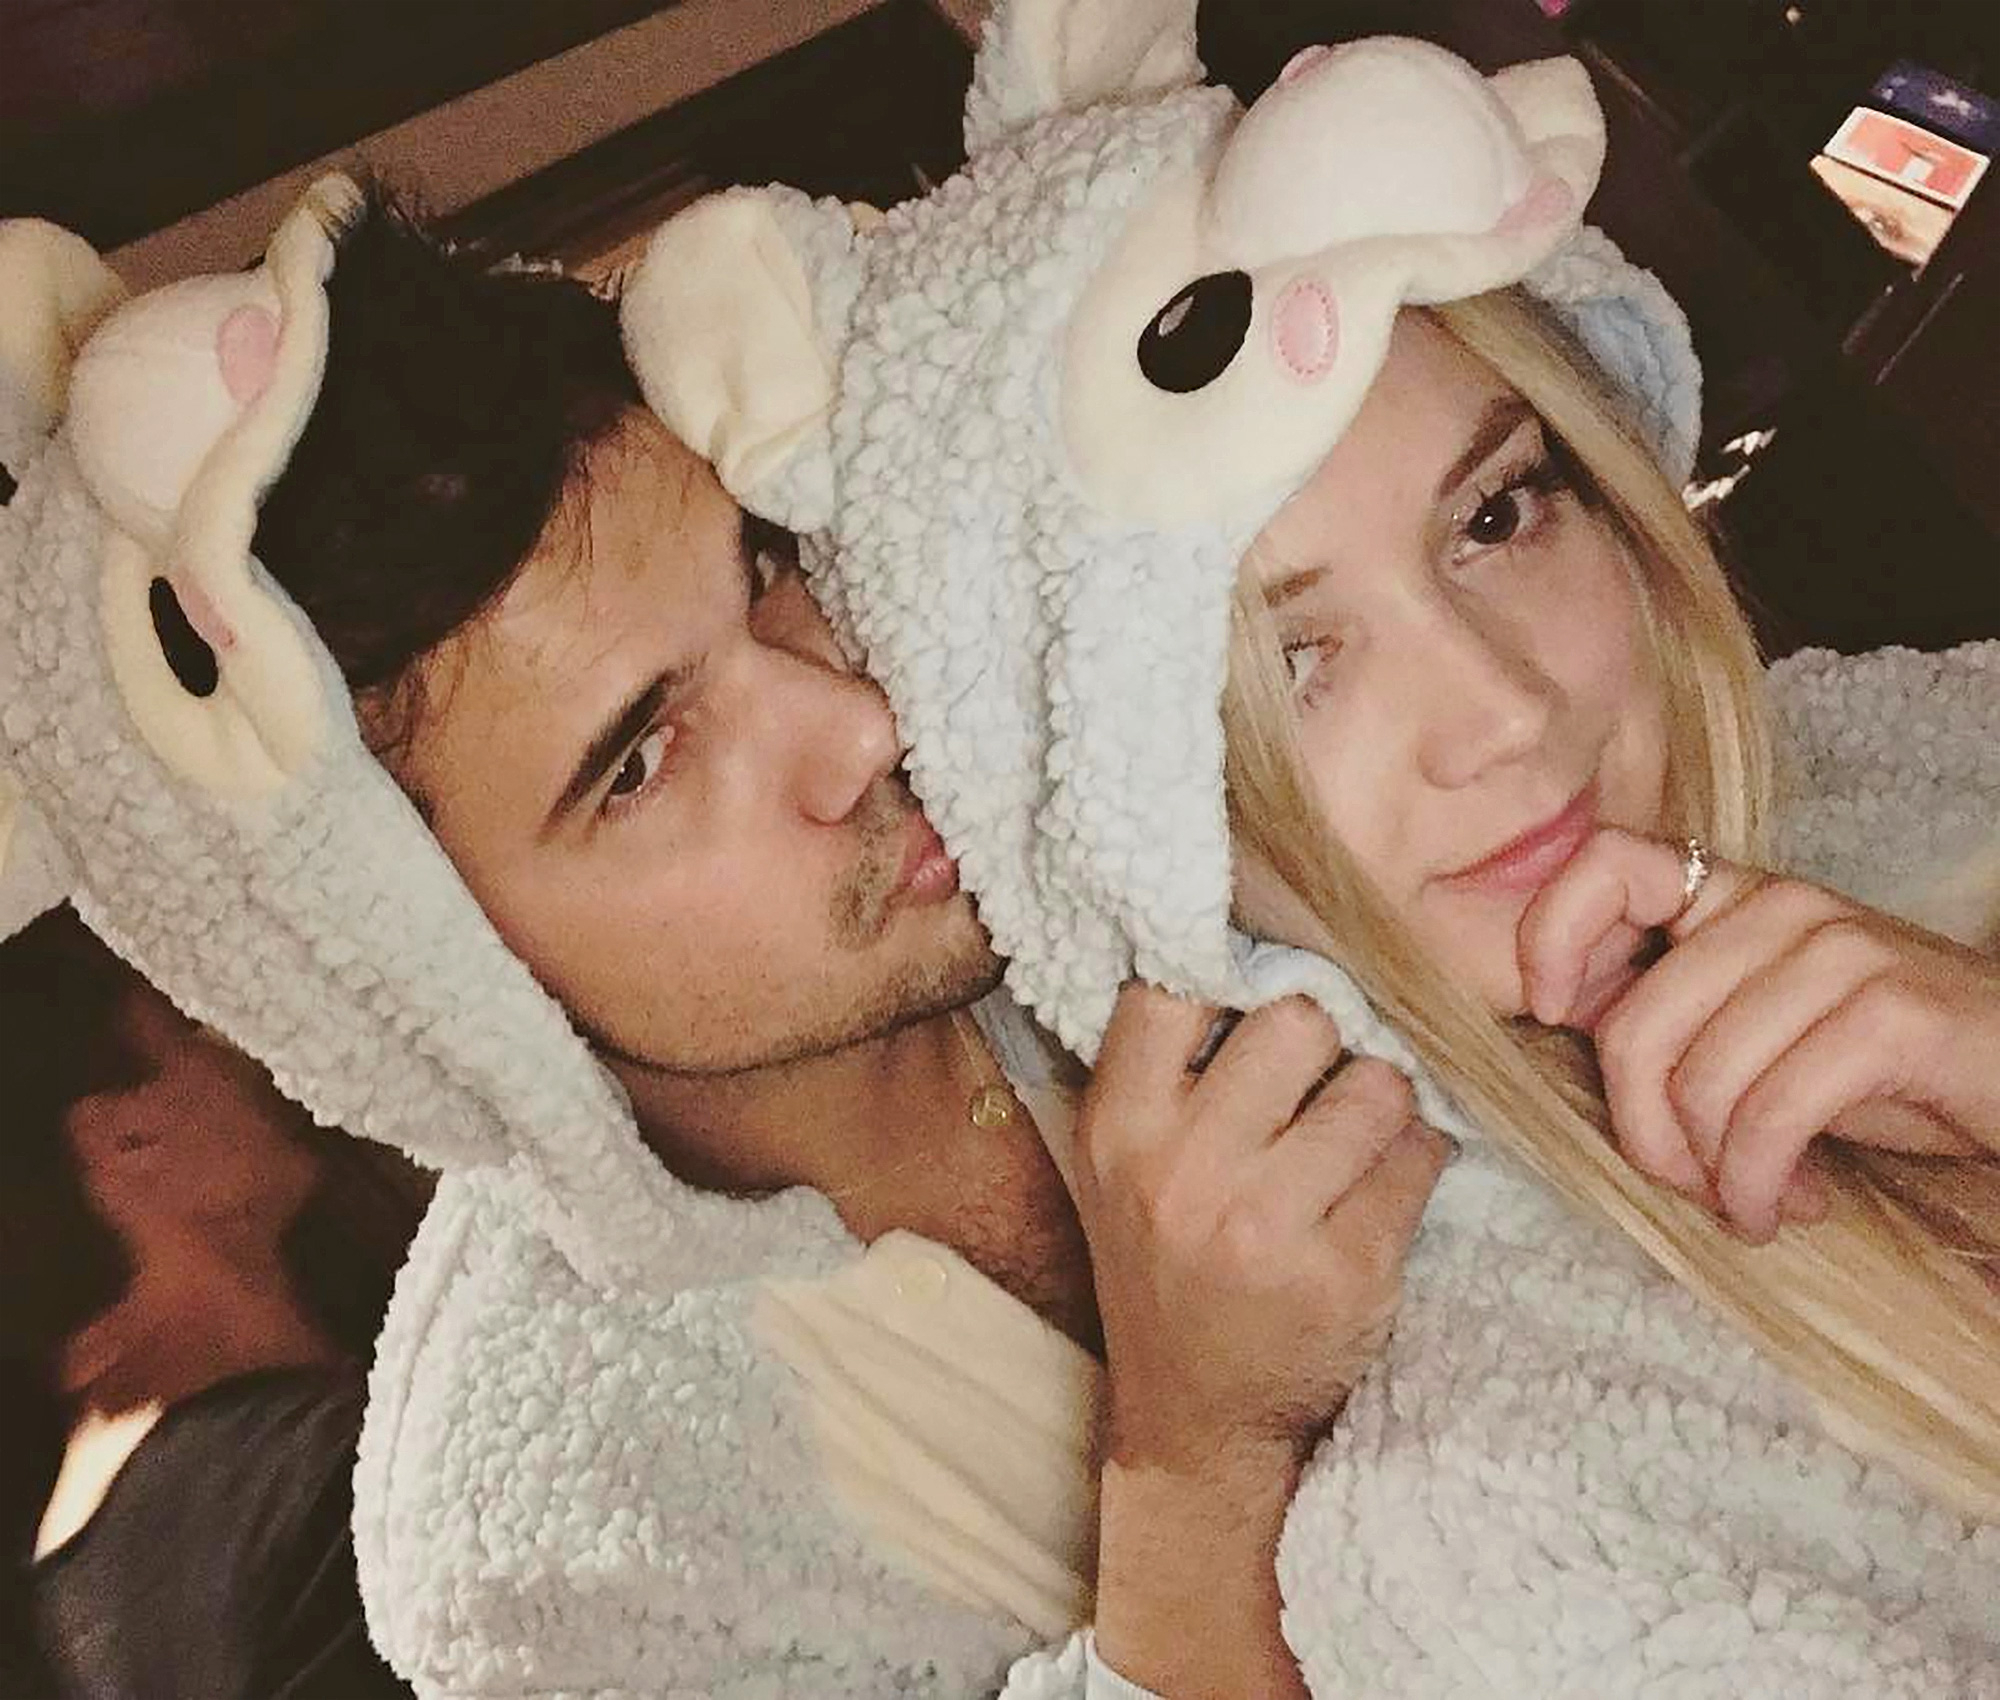 Billie Lourd Wishes Taylor Lautner Happy Birthday With